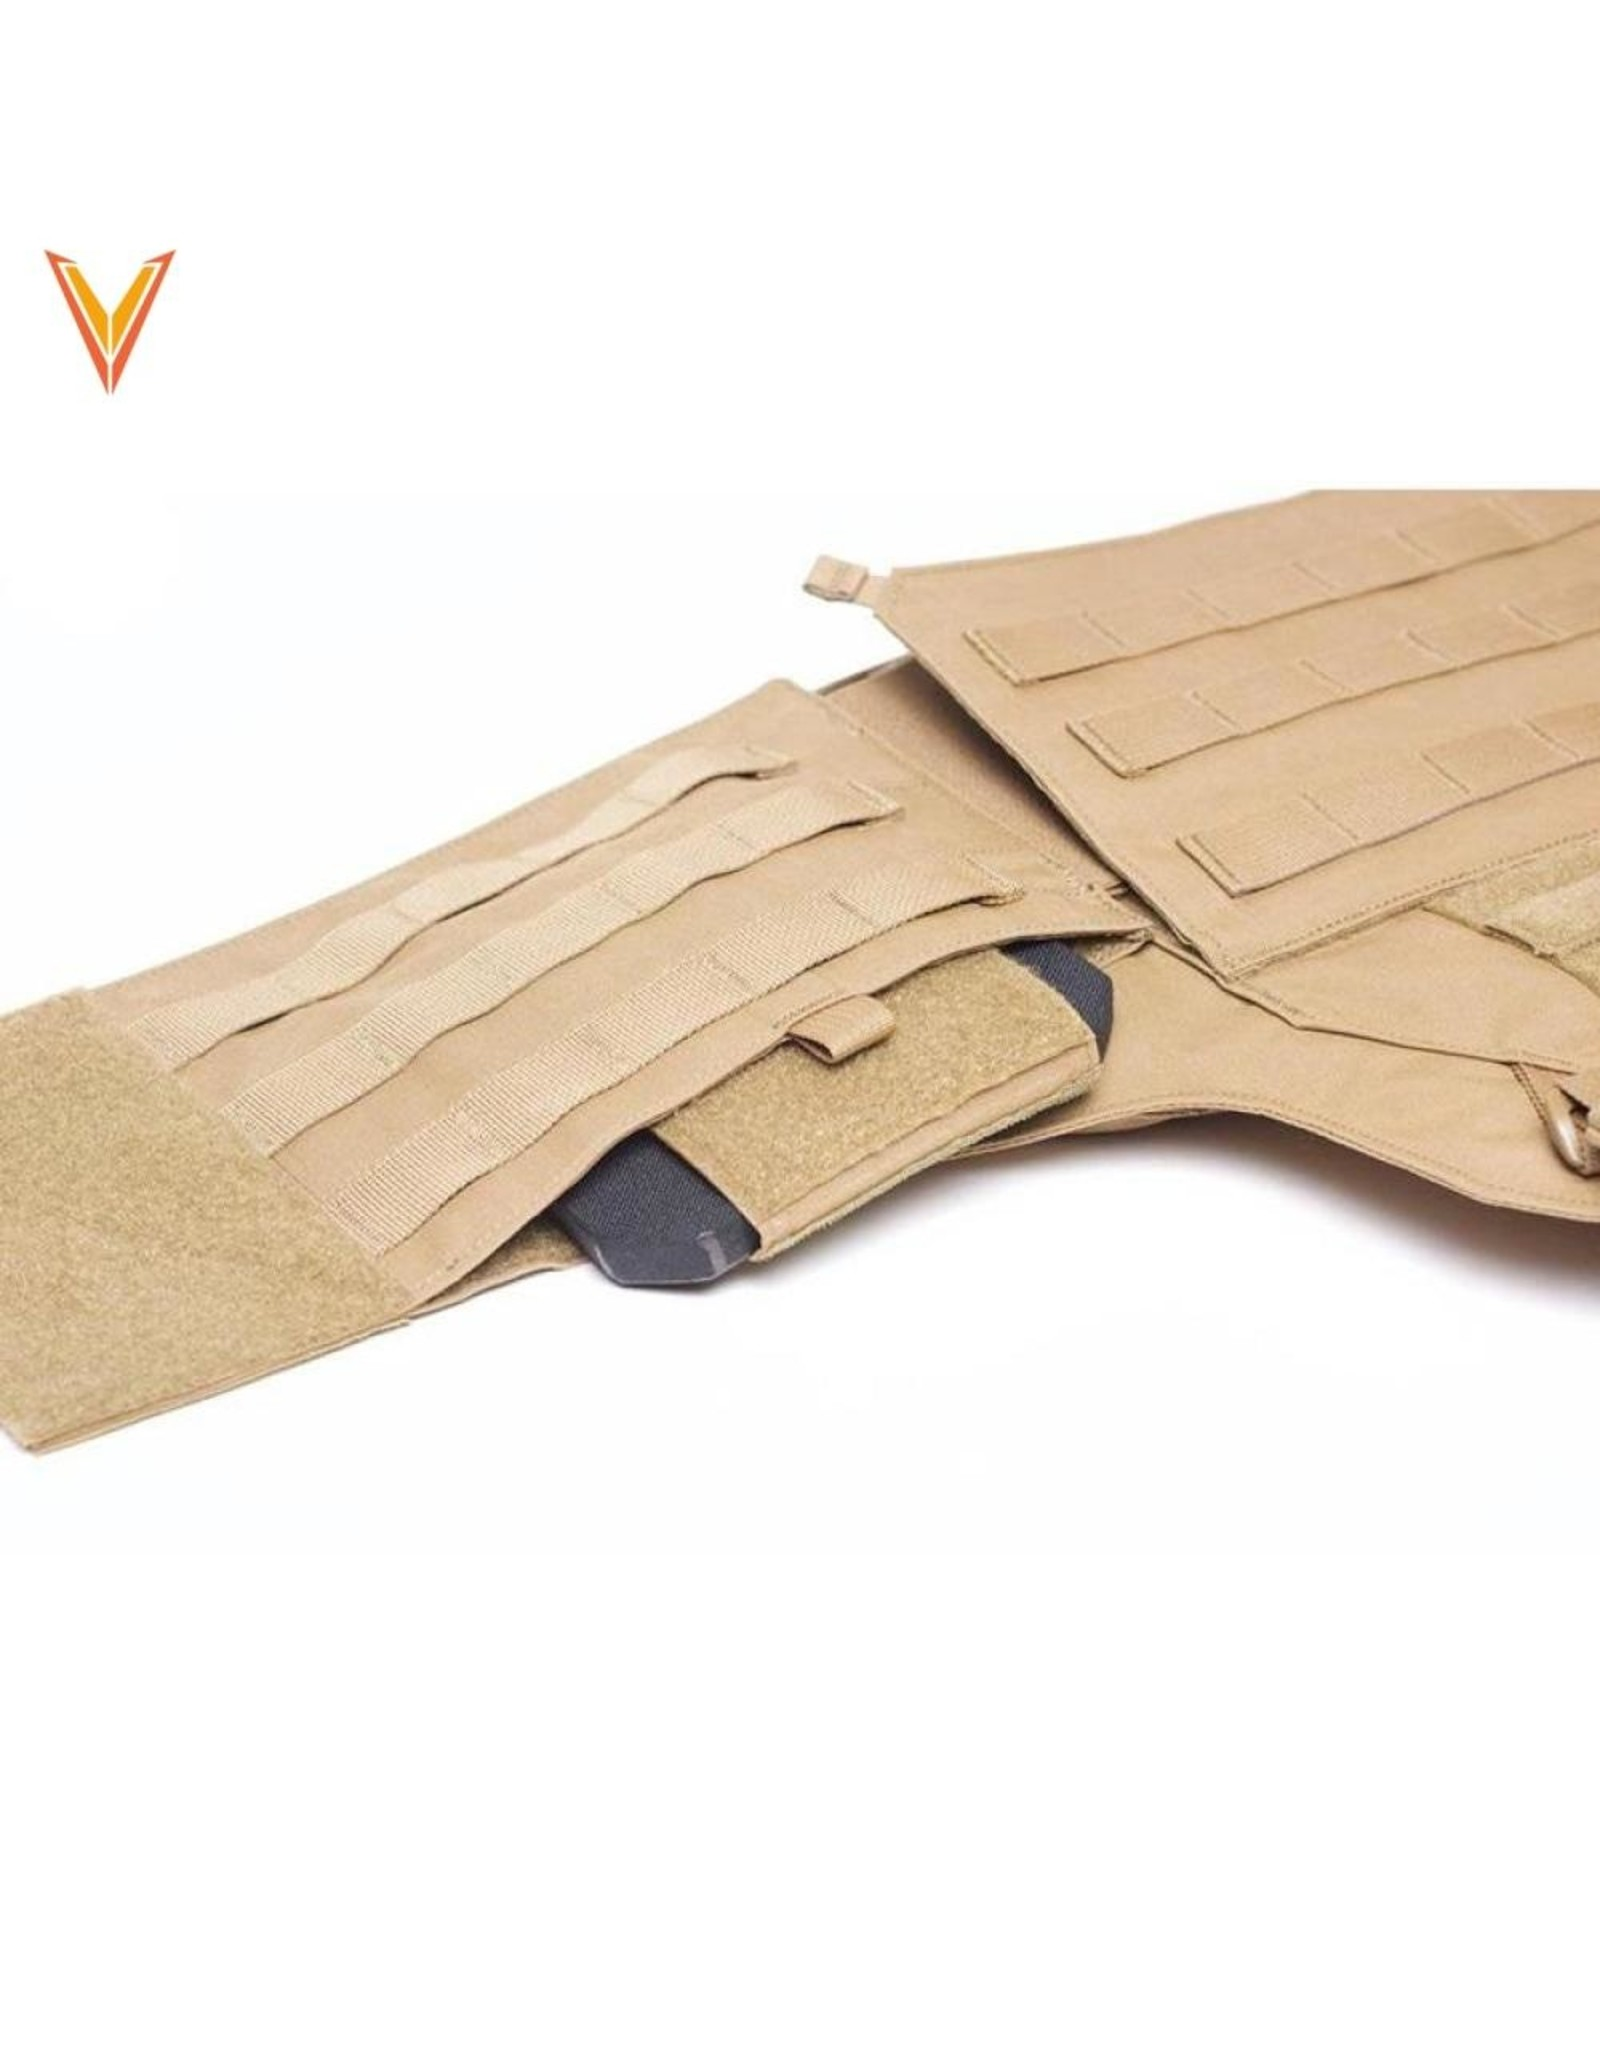 VELOCITY SYSTEMS SIDE PLATE RETENTION STRAP